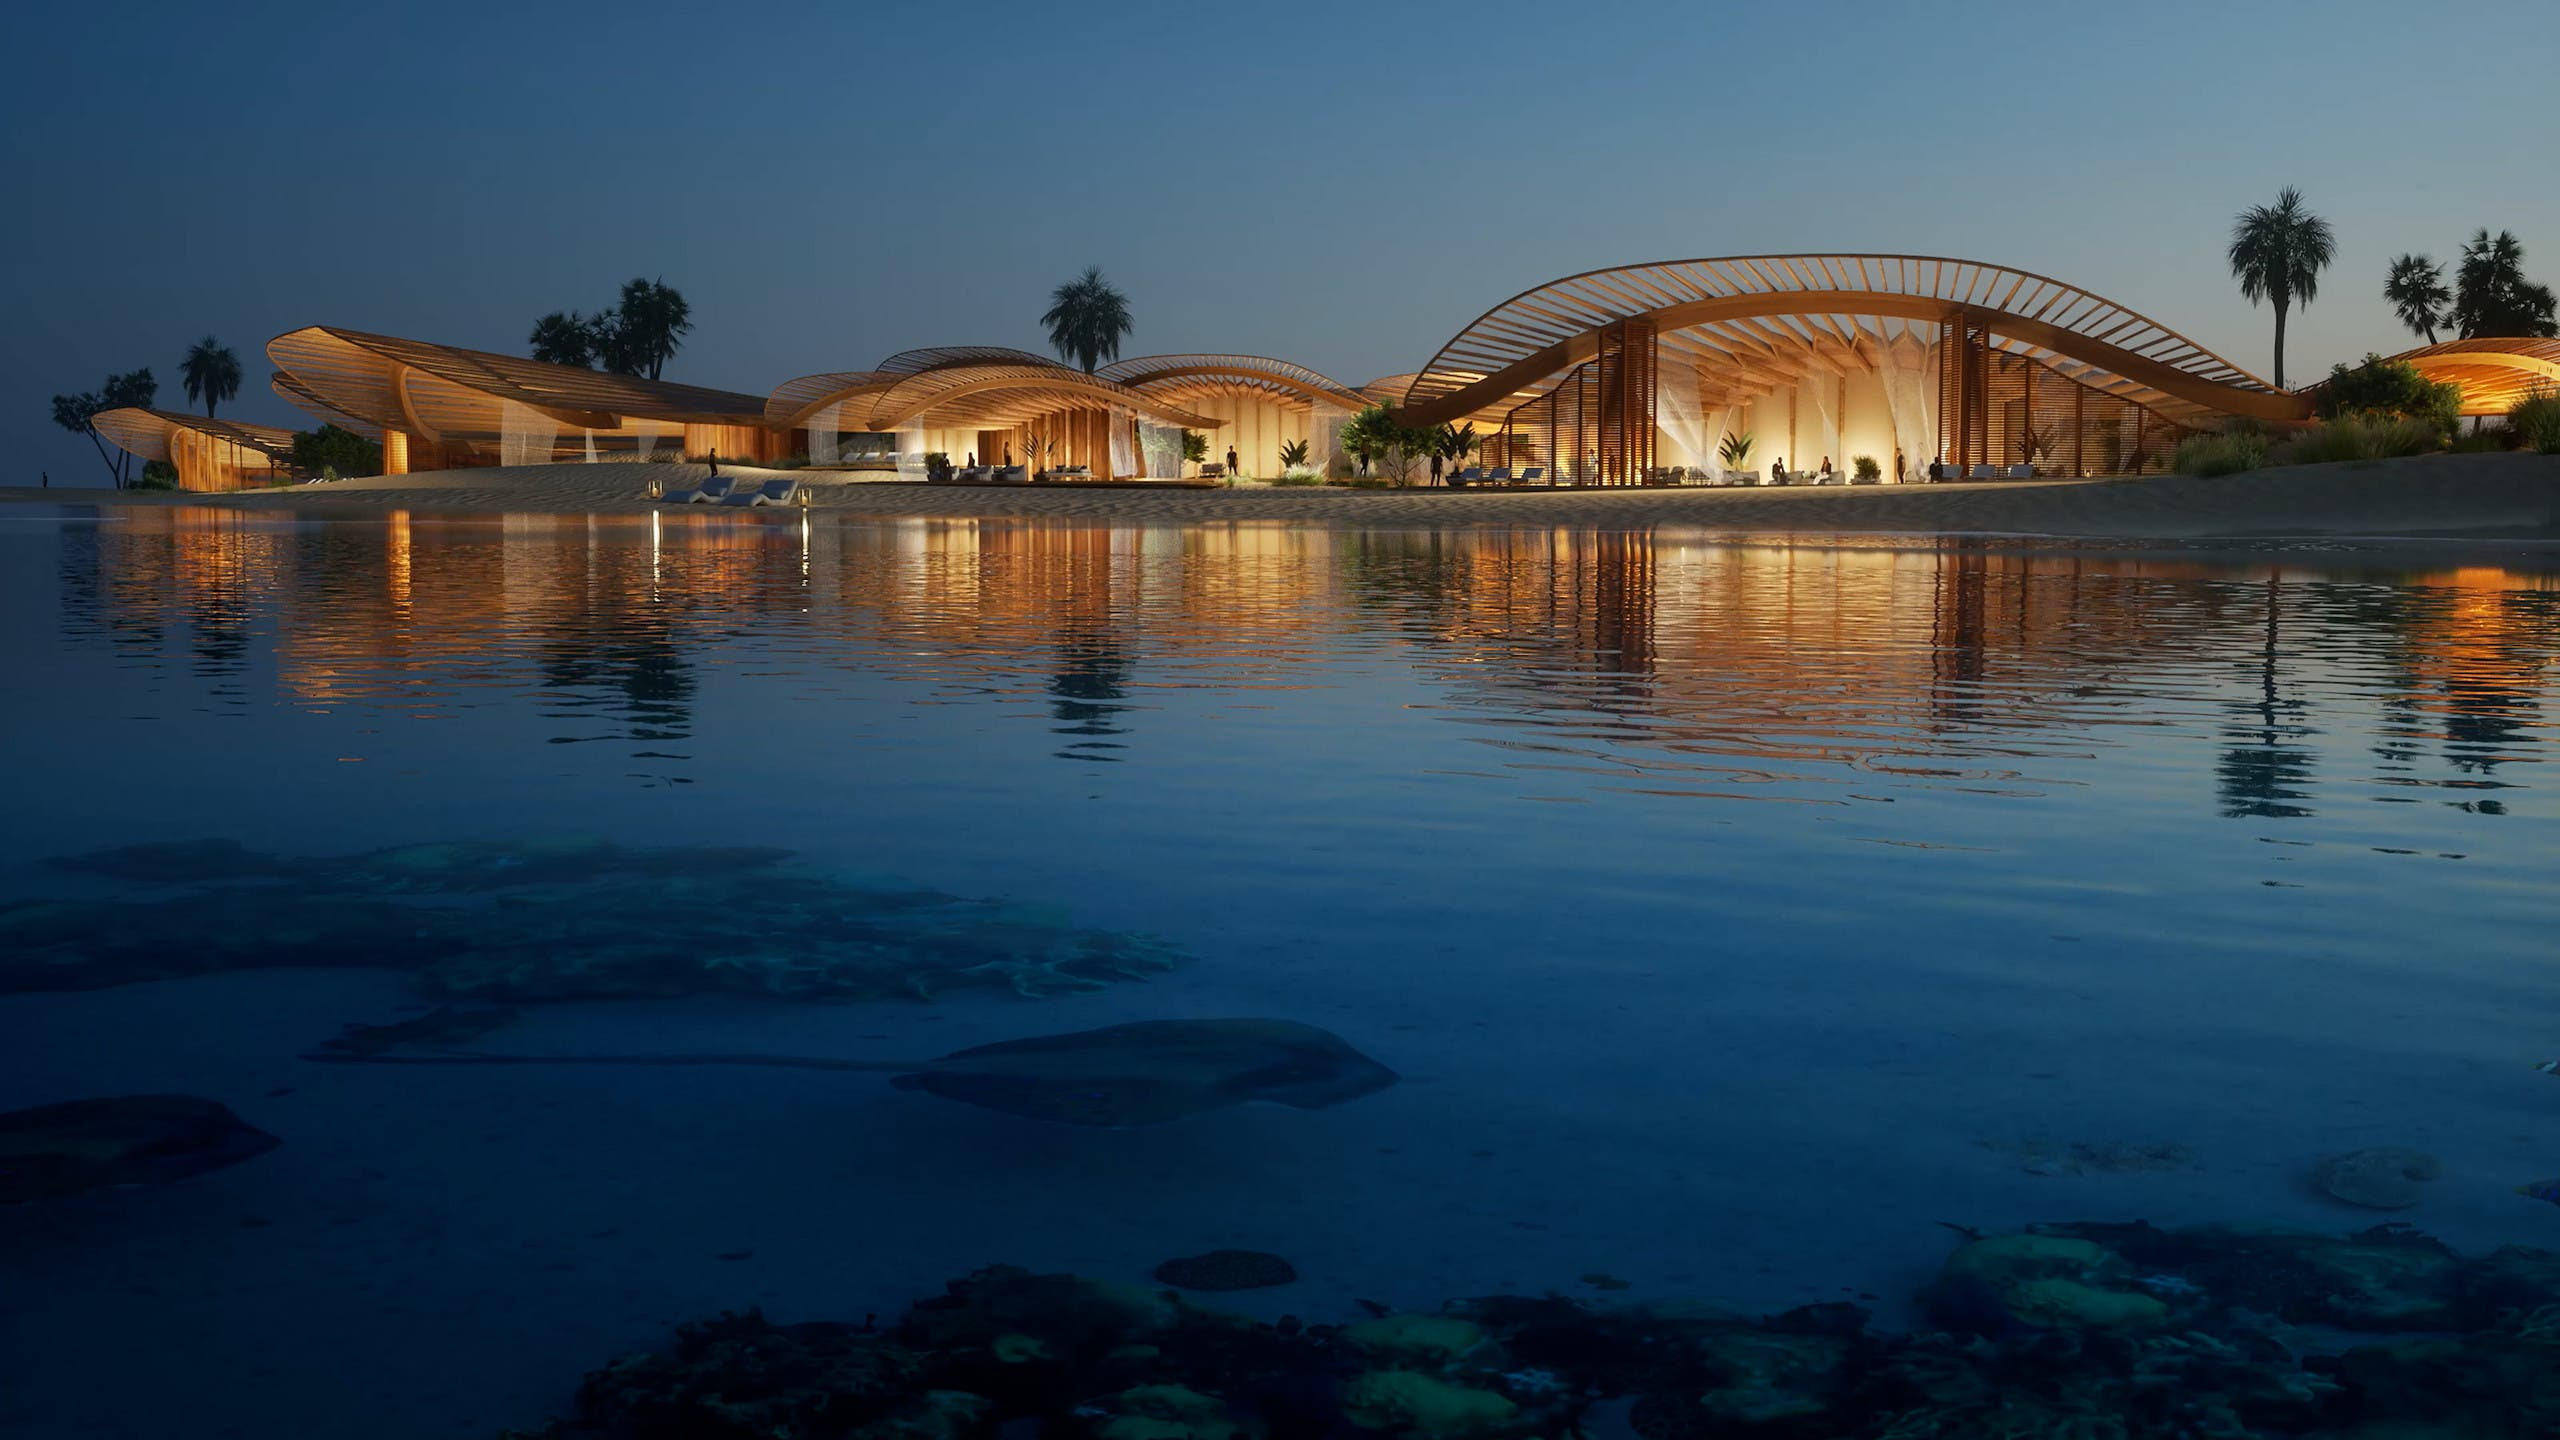 Shurayrah is the hub island of The Red Sea Project on the west coast of Saudi Arabia. (TRSDC)